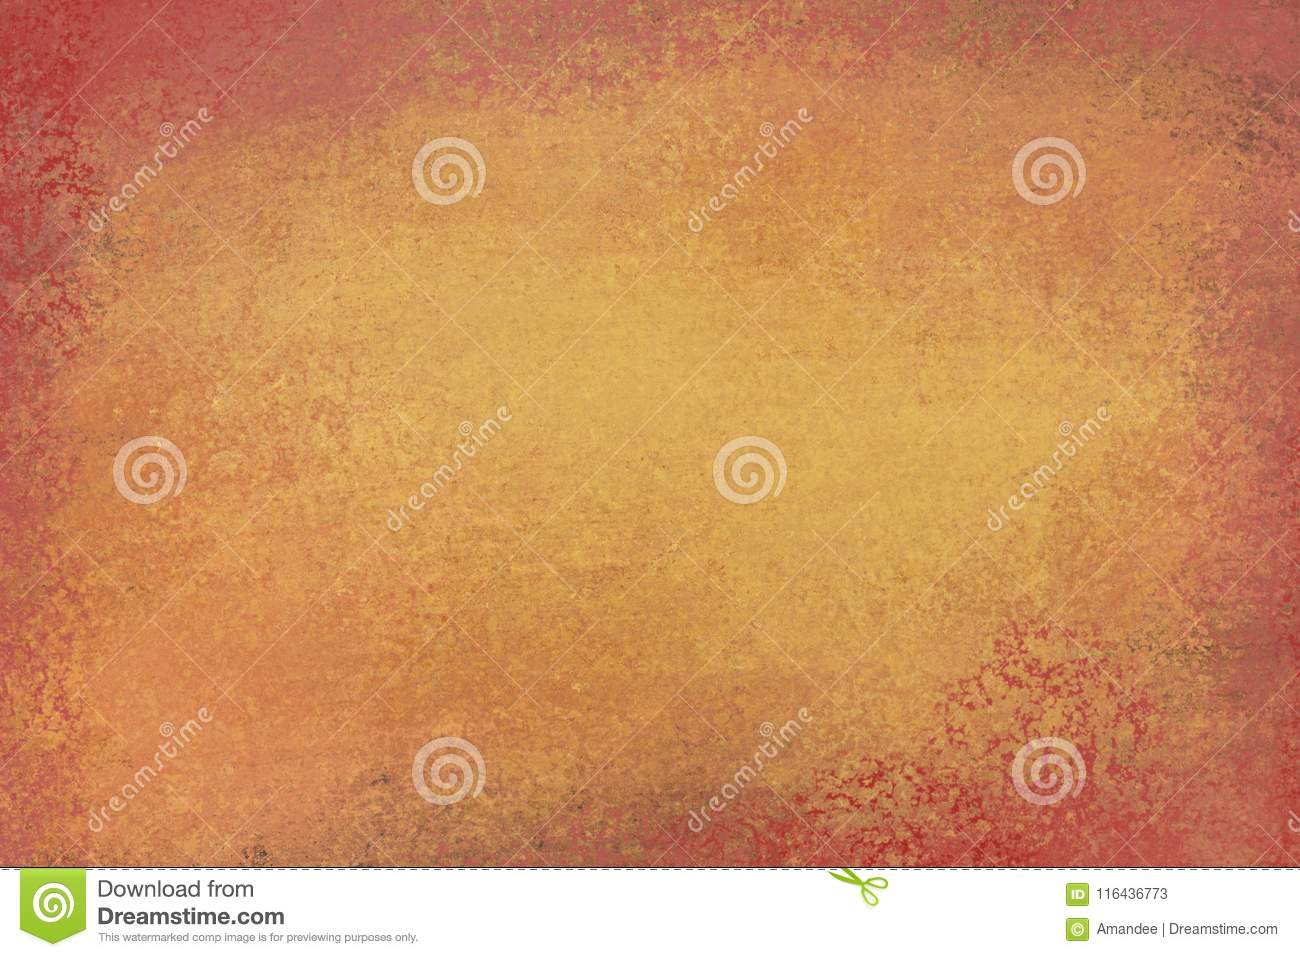 Old distressed background design with faded grunge texture in colors of brown and orange gold